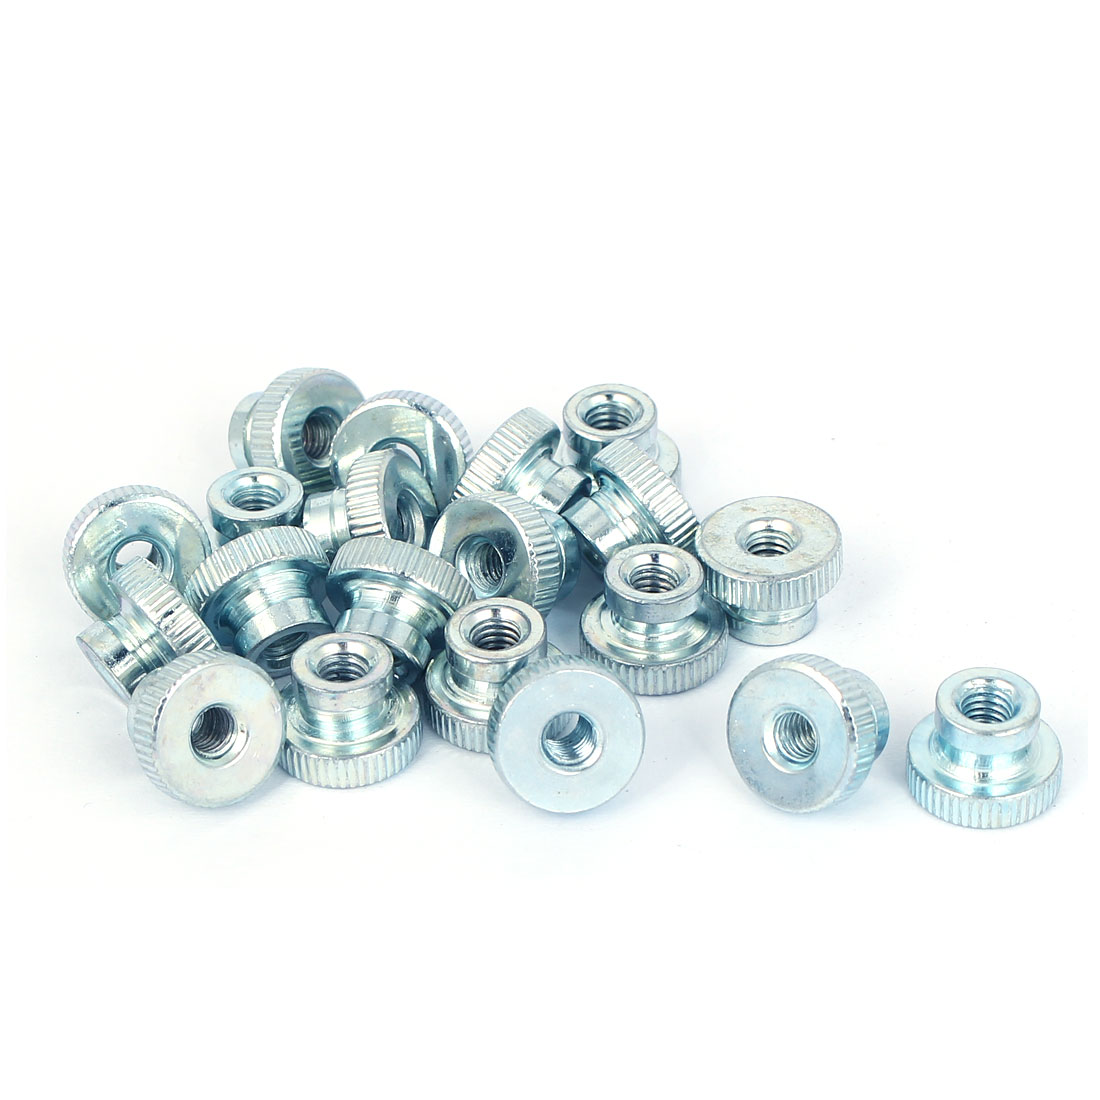 M4 Thread 8mm High Carbon Steel Round Knurled Head Thumb Nuts Silver Blue 20pcs